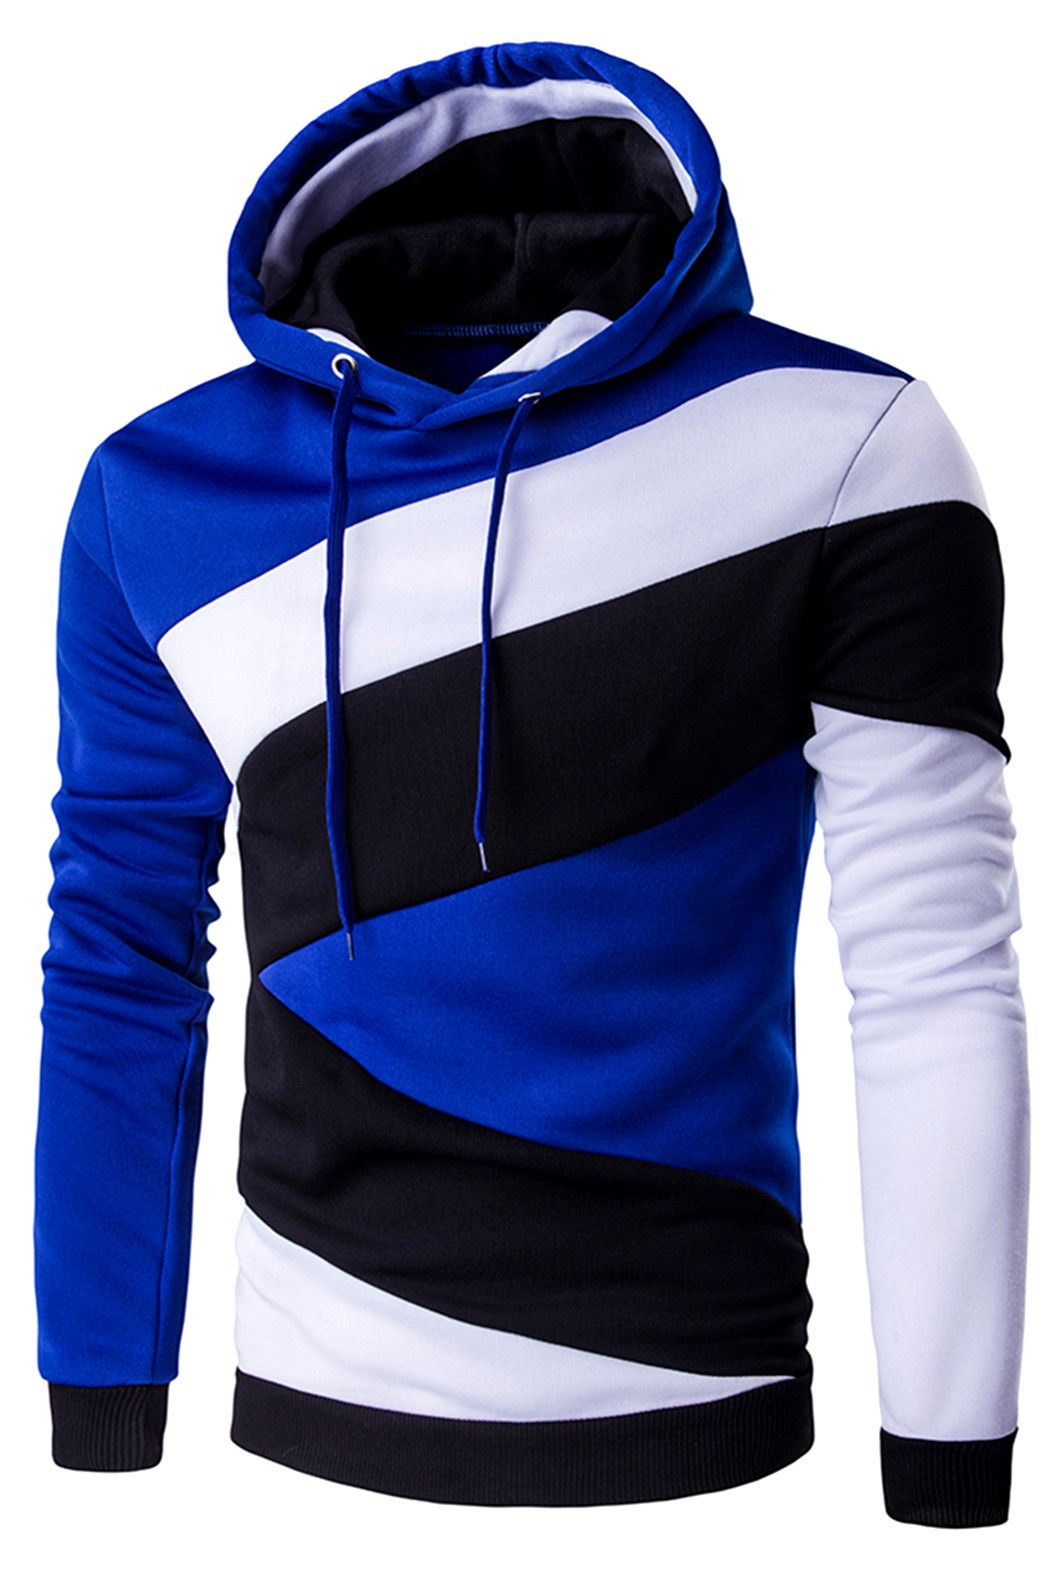 Men's Clothing Unpadupe Brand 2019 Hoodies Men Dragon Ball Coat Casual Male Jacket Moleton Masculino Slim Cotton Mens Sweatshirts Hip Hop Xxxl